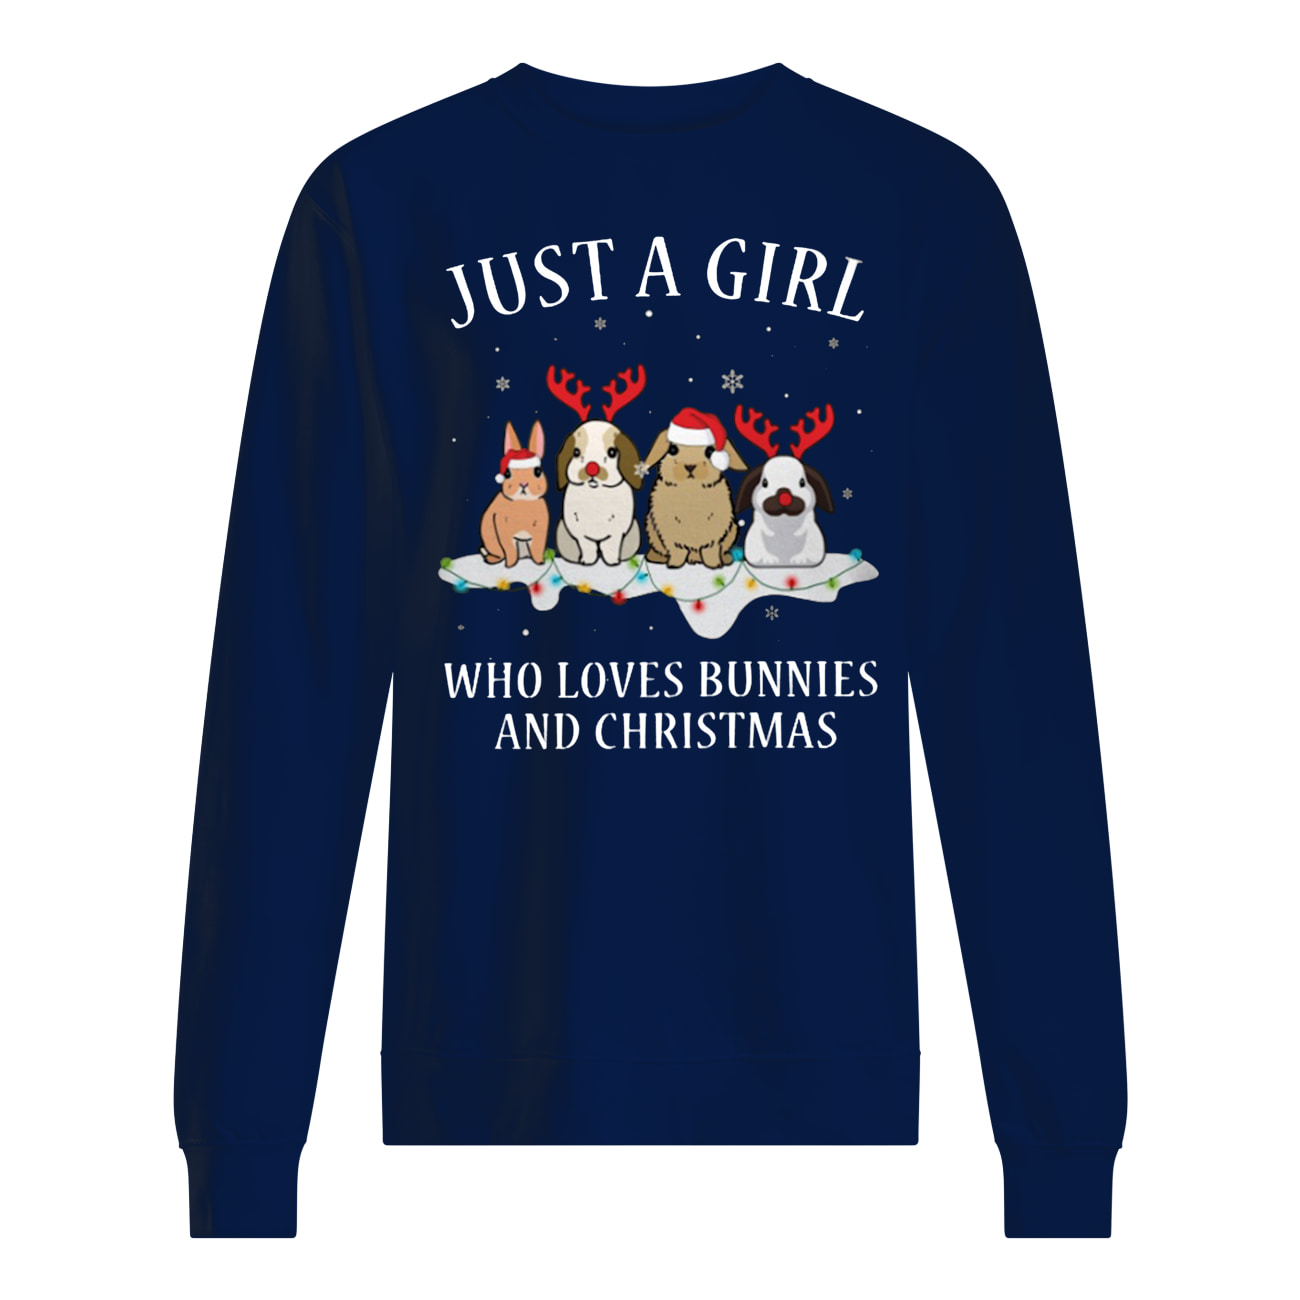 Just a girl who loves bunnies and christmas sweatshirt